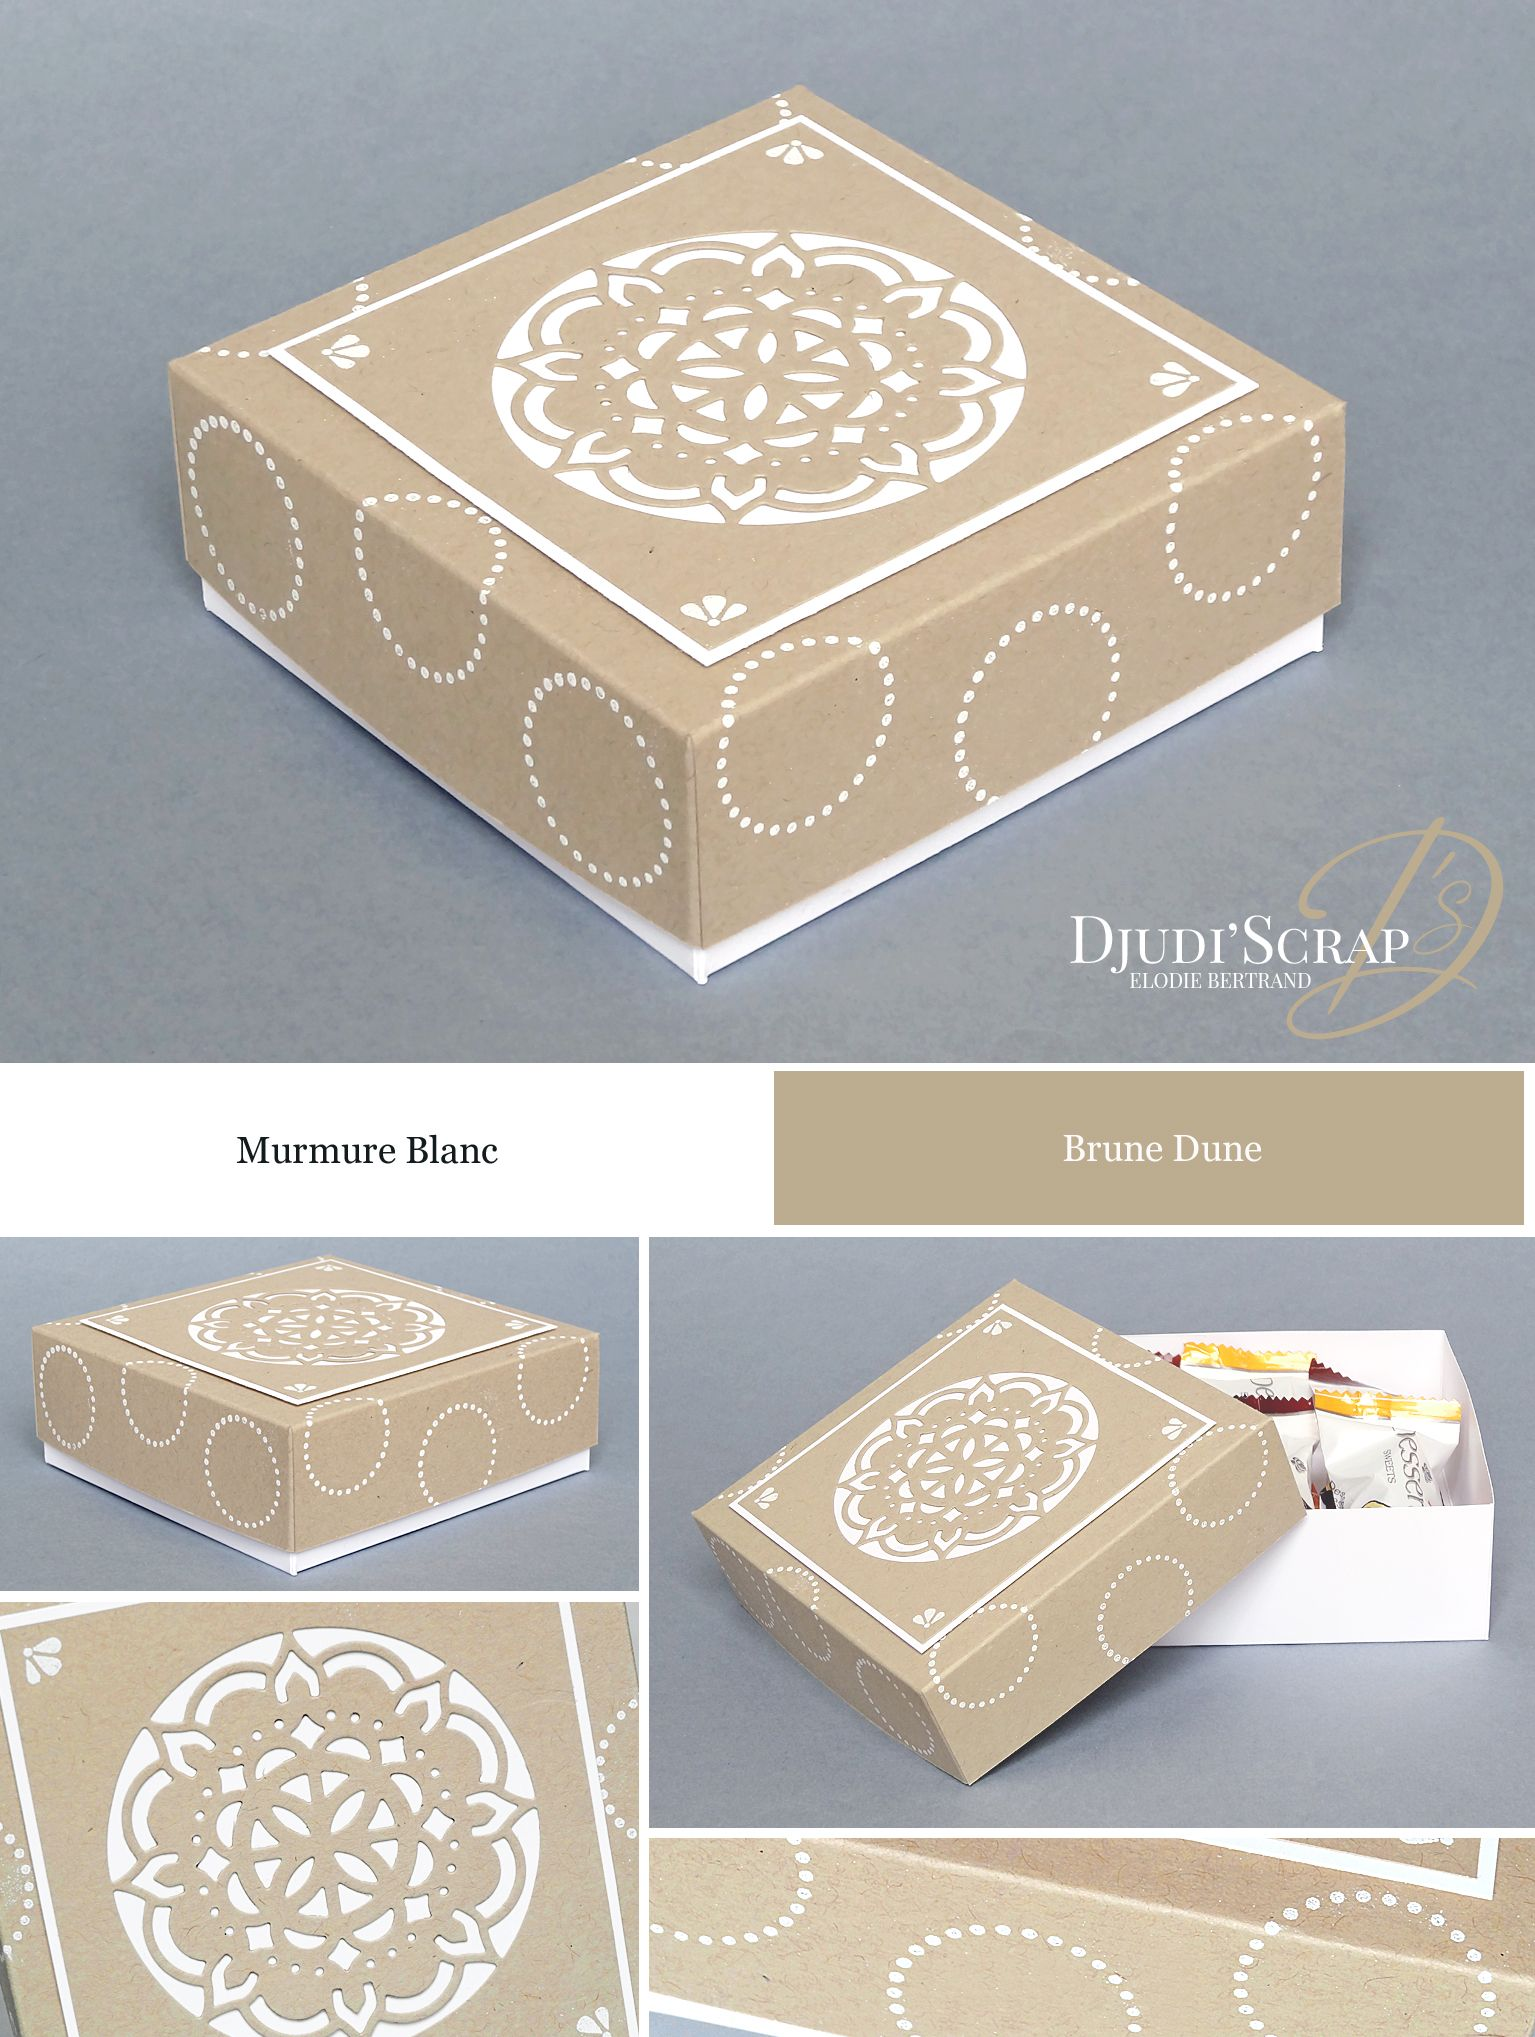 Stampin'Up by Djudi'Scrap - Tutoriel Boîte Chocolats « Thinlits Médaillons de l'Orient / Eastern Medaillons Thinlits »